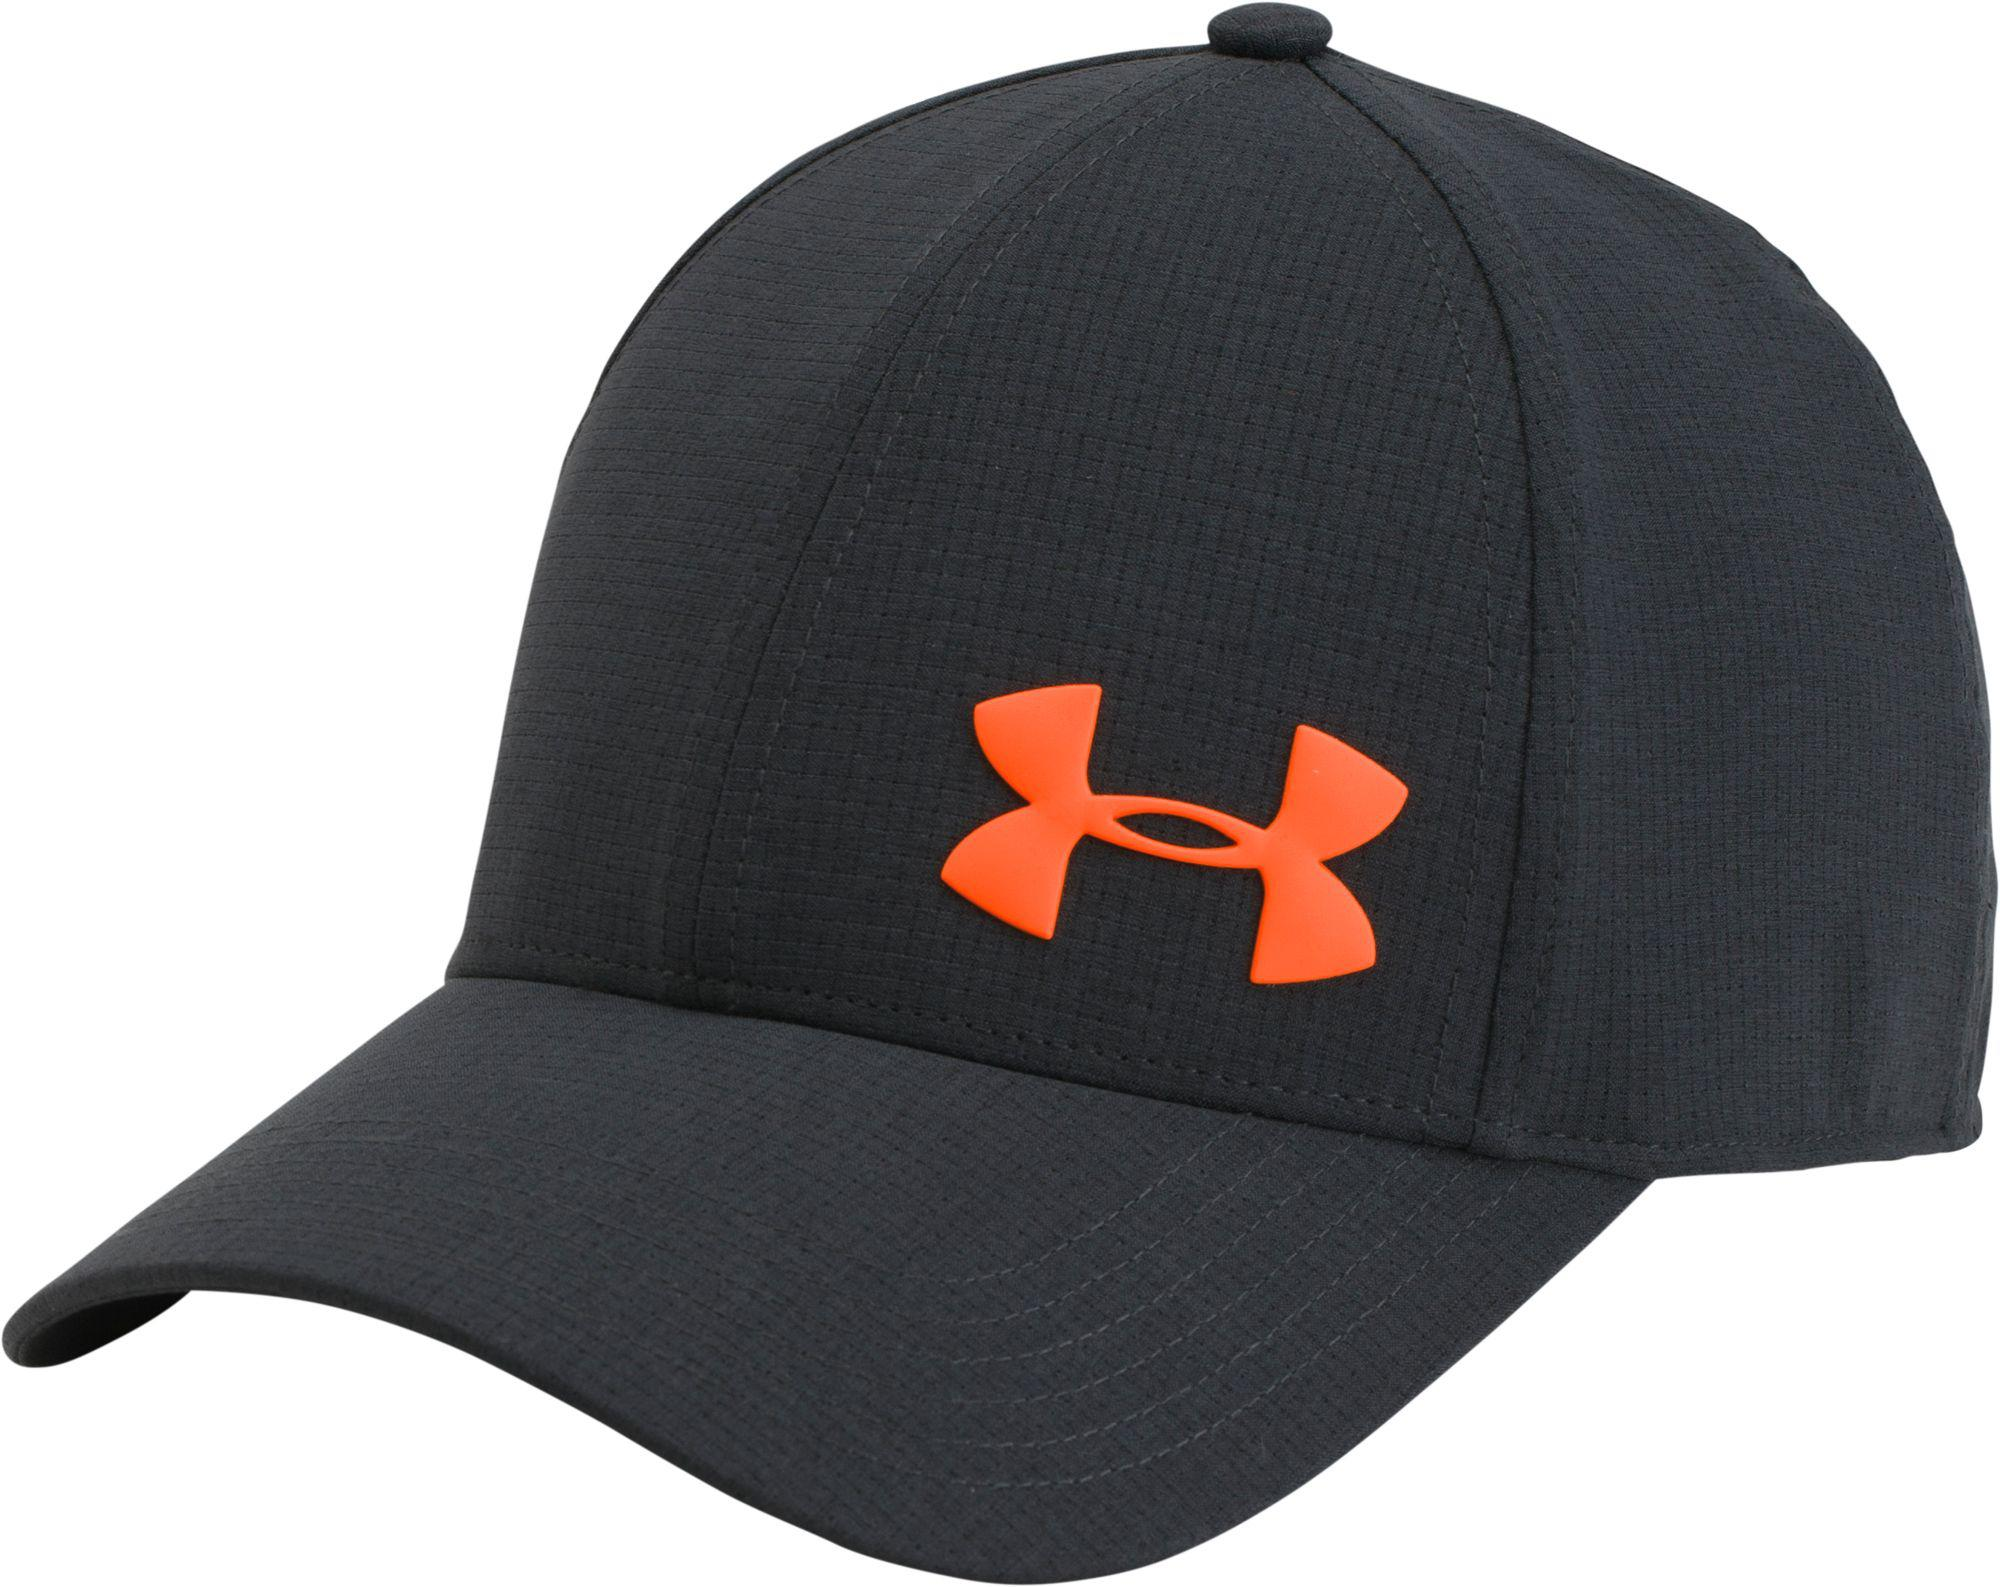 b993f8c2a49 View fullscreen · Under Armour - Multicolor Airvent Core Hat for Men - Lyst